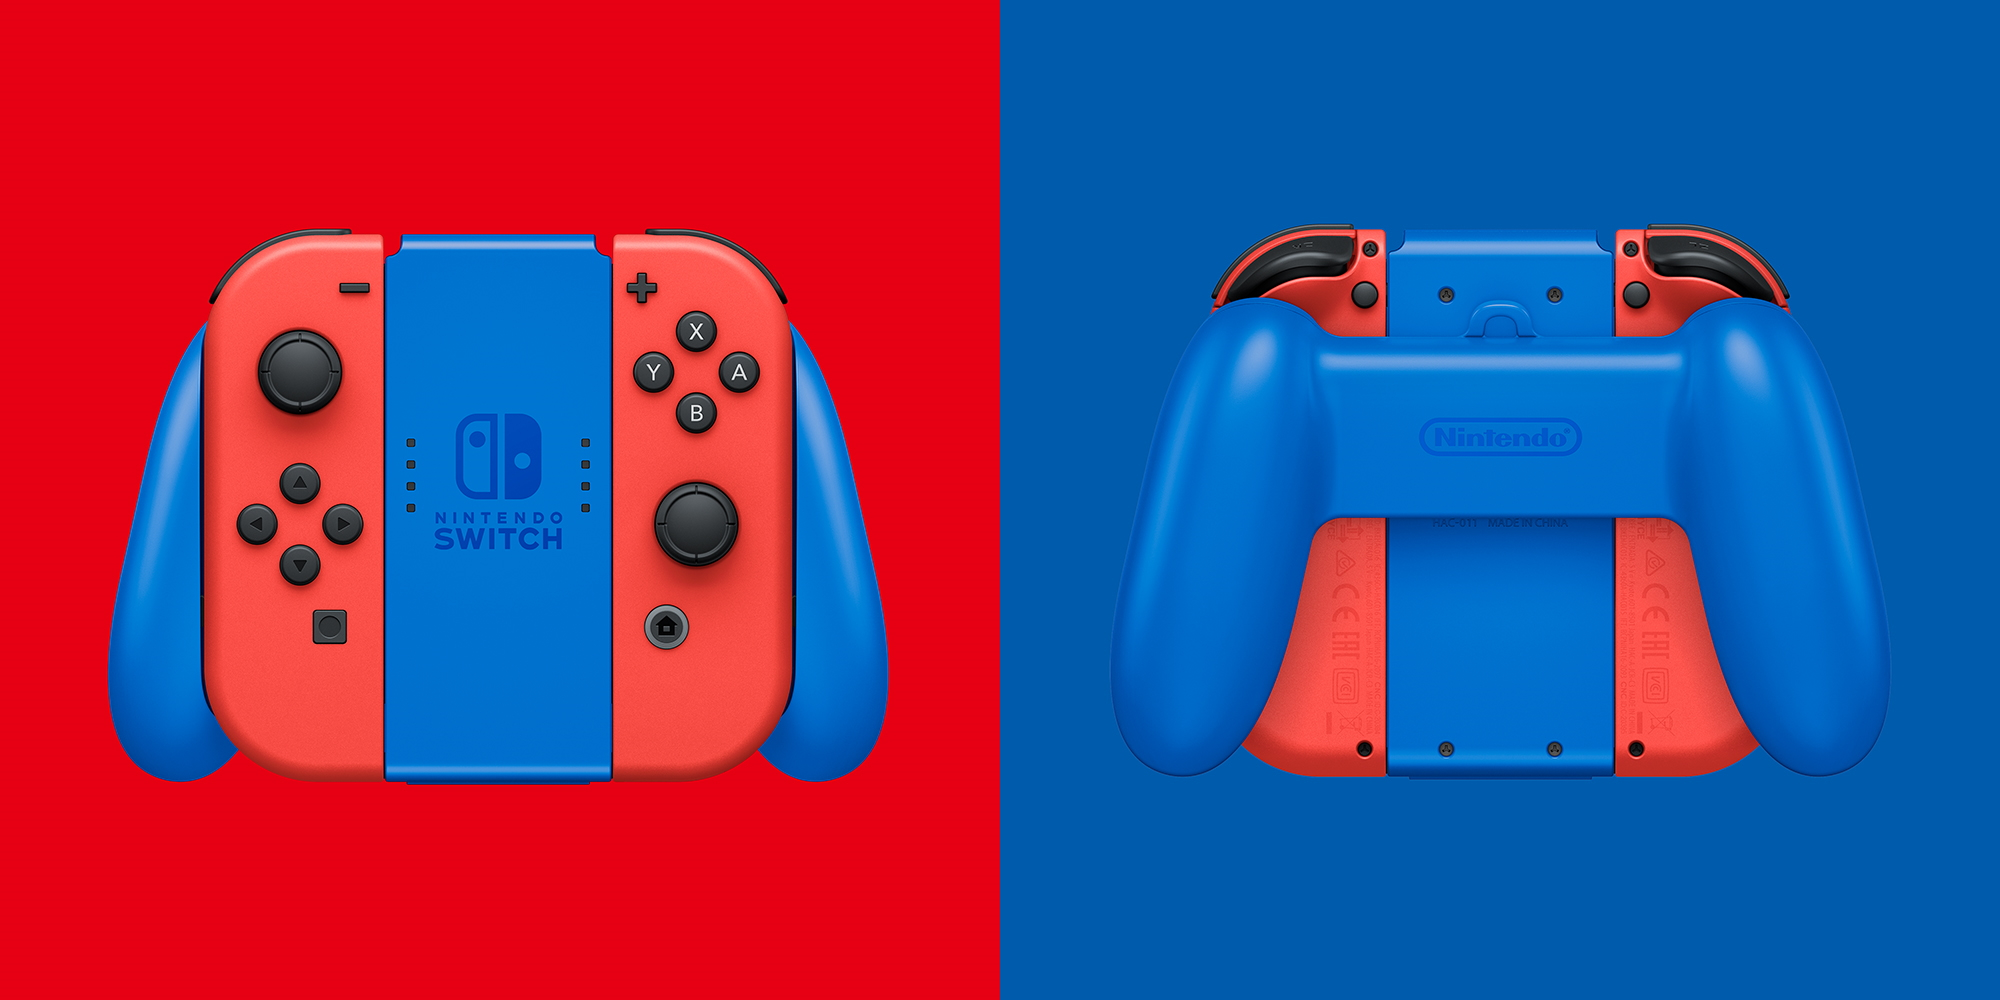 Mario Red & Blue Switch controllers